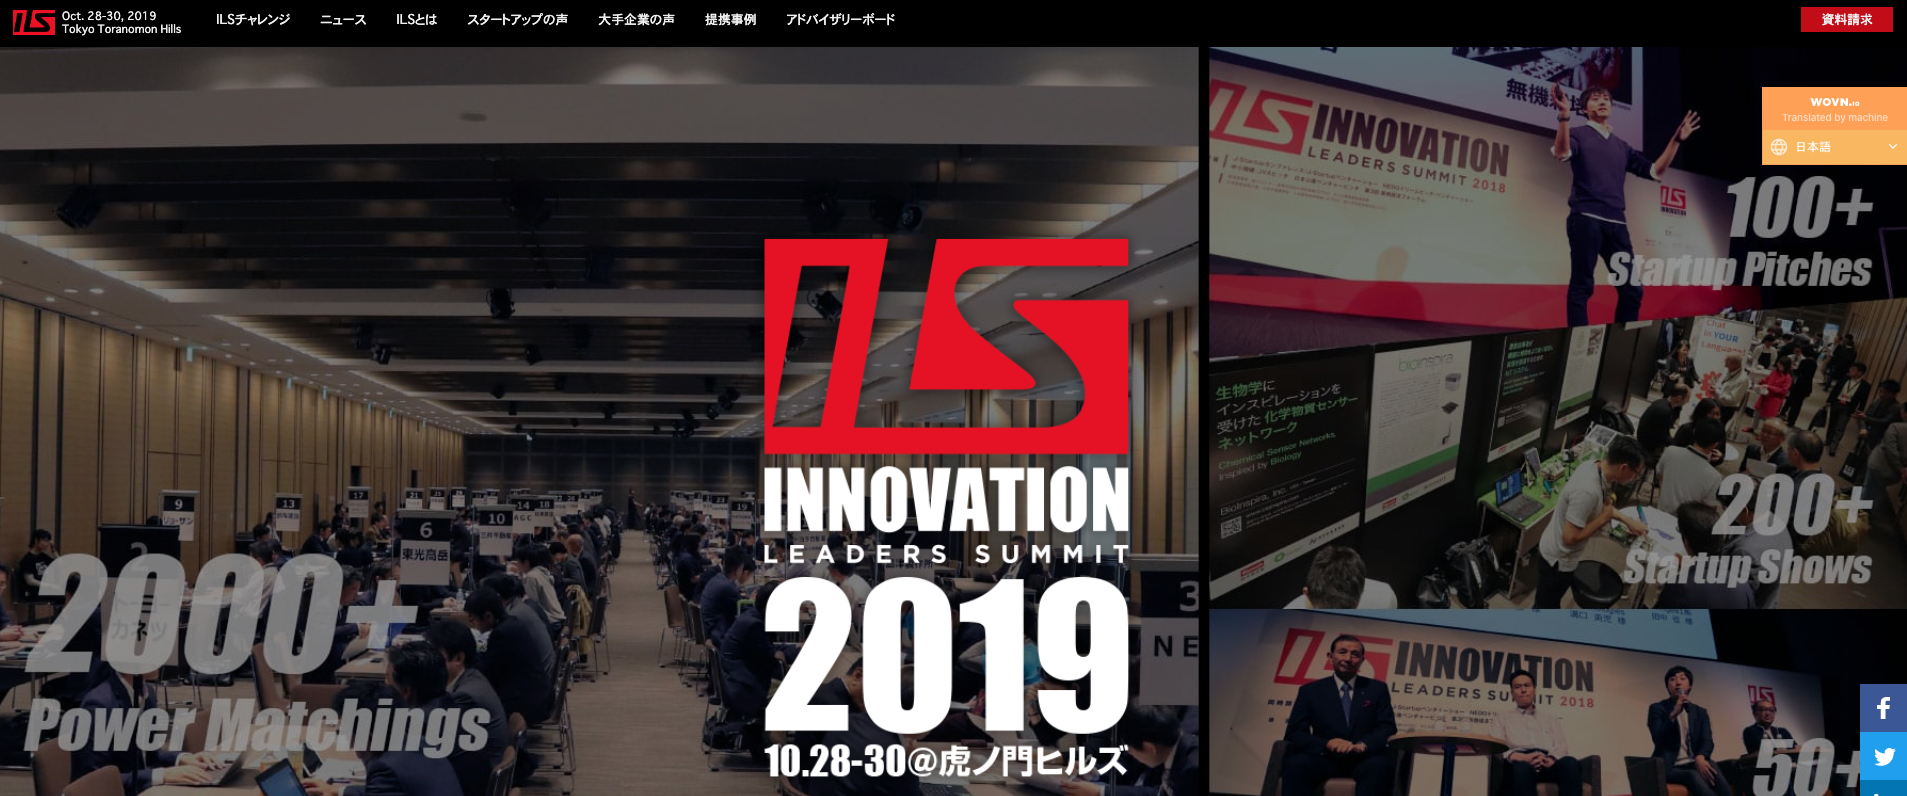 QUBIT SECURITY ILS2019参加